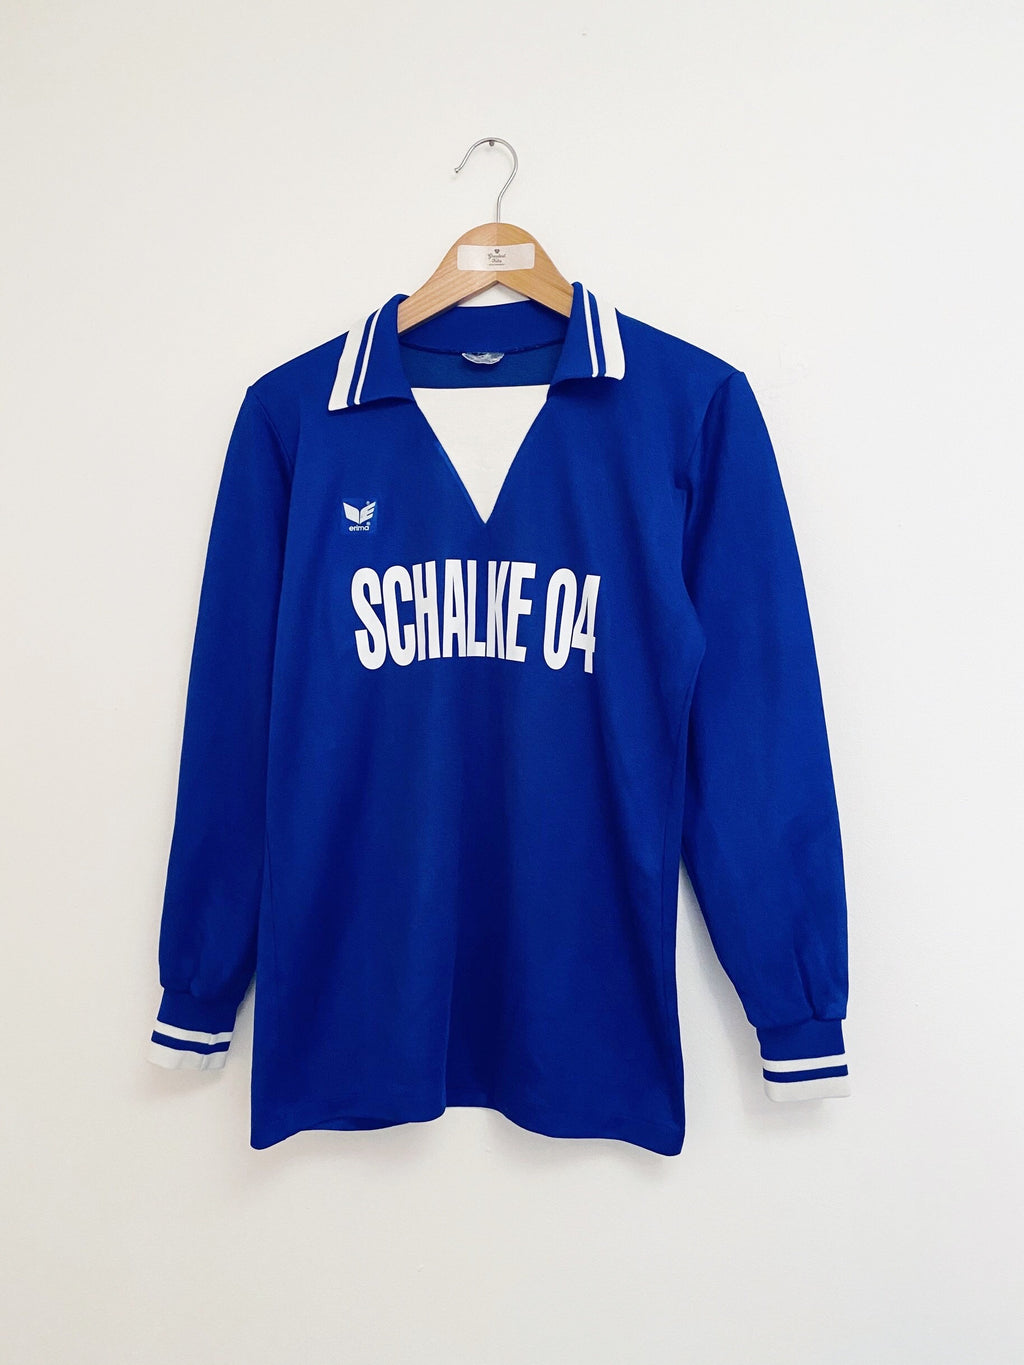 1978/79 Schalke Home L/S Shirt (M) 9/10